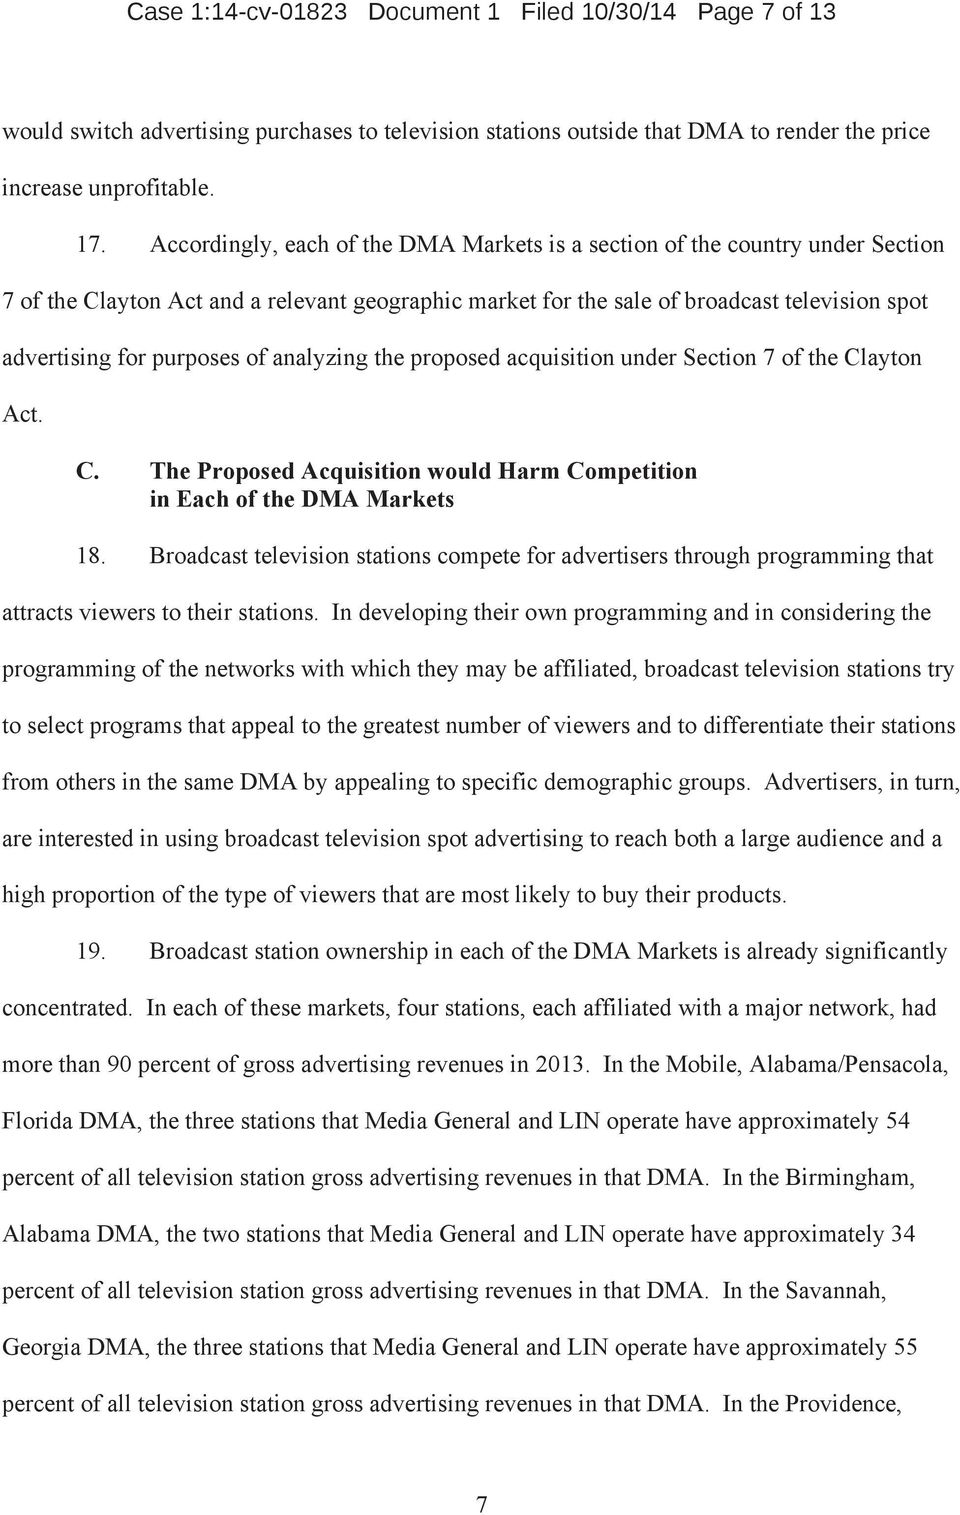 of analyzing the proposed acquisition under Section 7 of the Clayton Act. C. The Proposed Acquisition would Harm Competition in Each of the DMA Markets 18.